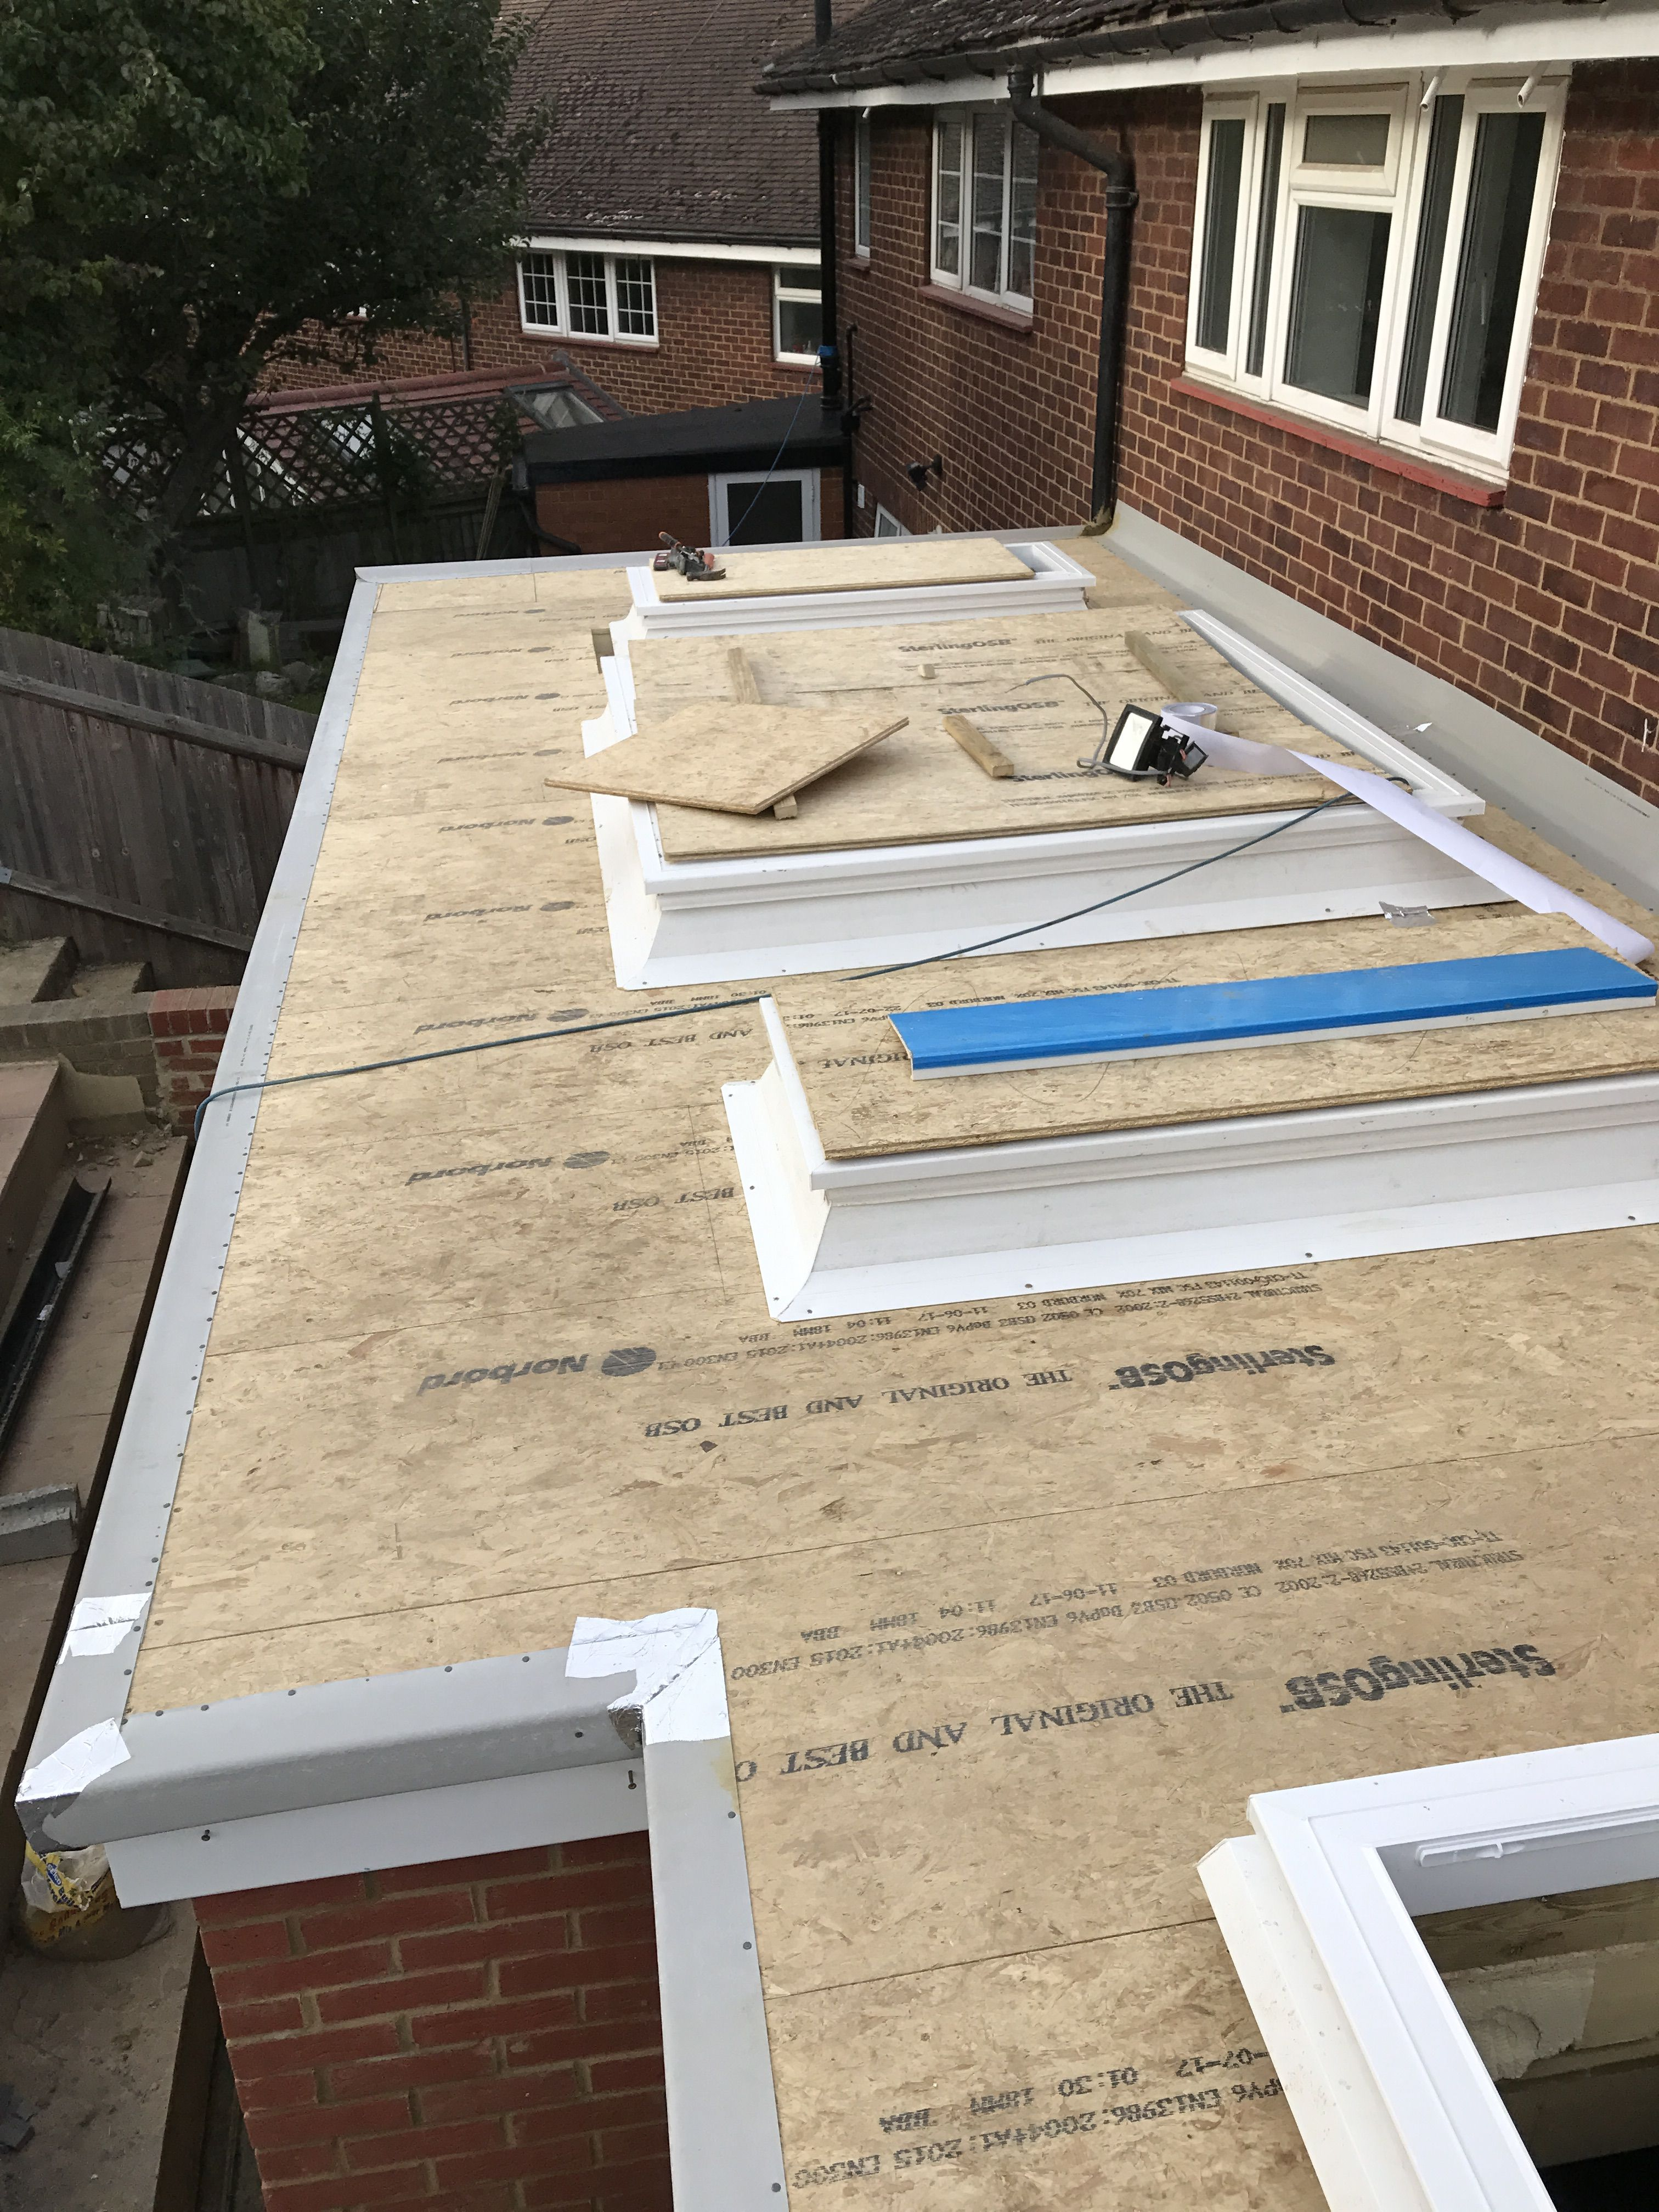 Preparation For Grp Flat Roof With Skylights Fibreglass Flat Roof Flat Roof Construction Flat Roof Extension